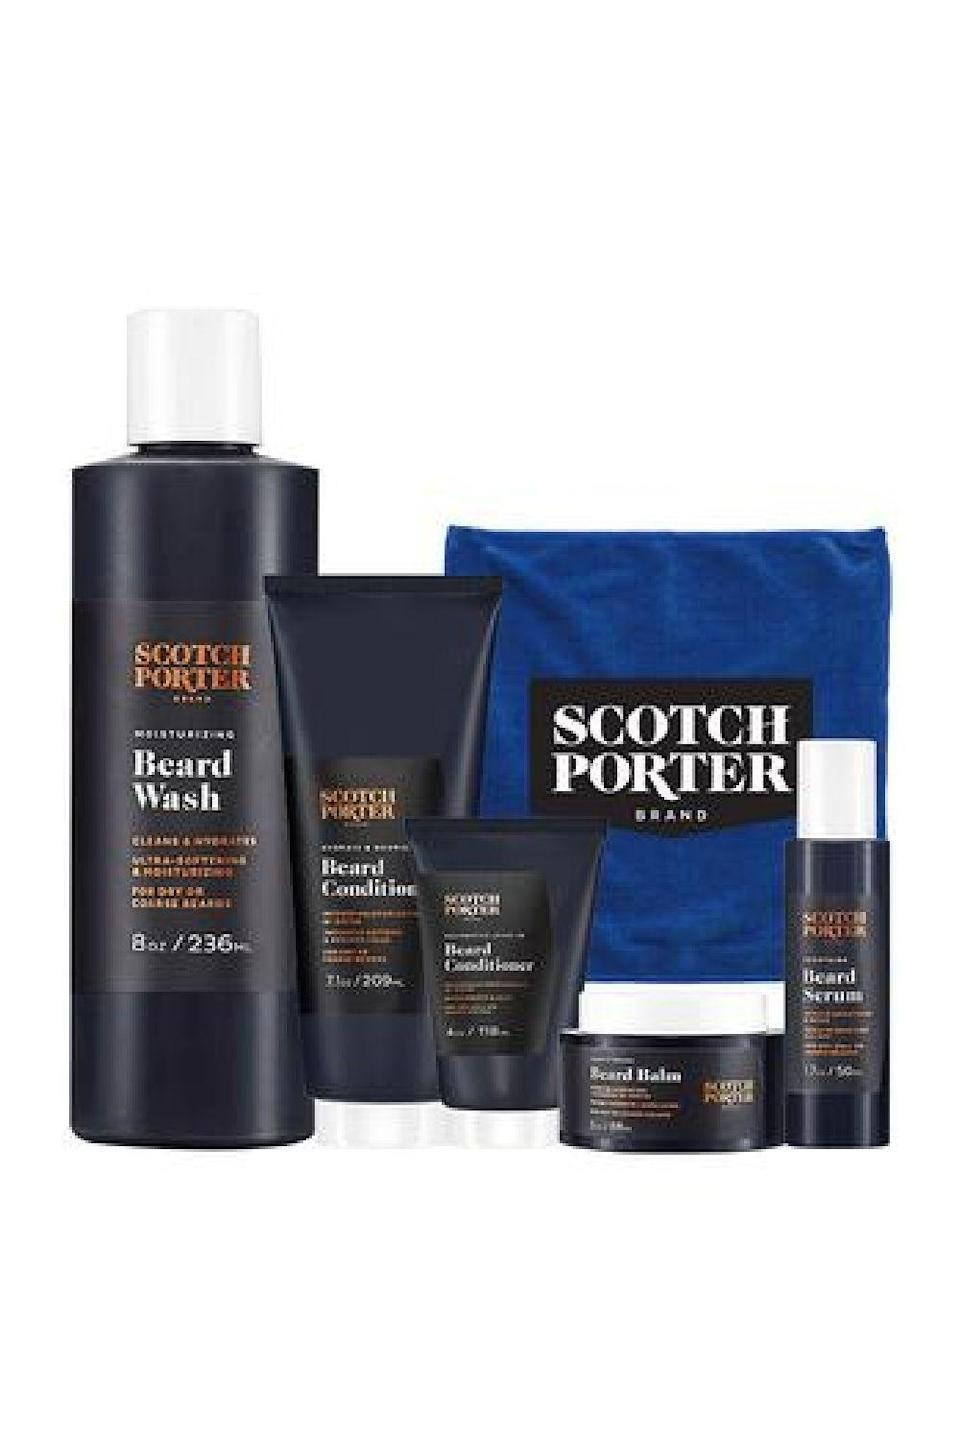 "<p>scotchporter.com</p><p><strong>$81.99</strong></p><p><a href=""https://go.redirectingat.com?id=74968X1596630&url=https%3A%2F%2Fwww.scotchporter.com%2Fproducts%2Fget-bearded-collection&sref=https%3A%2F%2Fwww.cosmopolitan.com%2Fstyle-beauty%2Ffashion%2Fg34363935%2Fbest-gifts-under-100%2F"" rel=""nofollow noopener"" target=""_blank"" data-ylk=""slk:Shop Now"" class=""link rapid-noclick-resp"">Shop Now</a></p>"